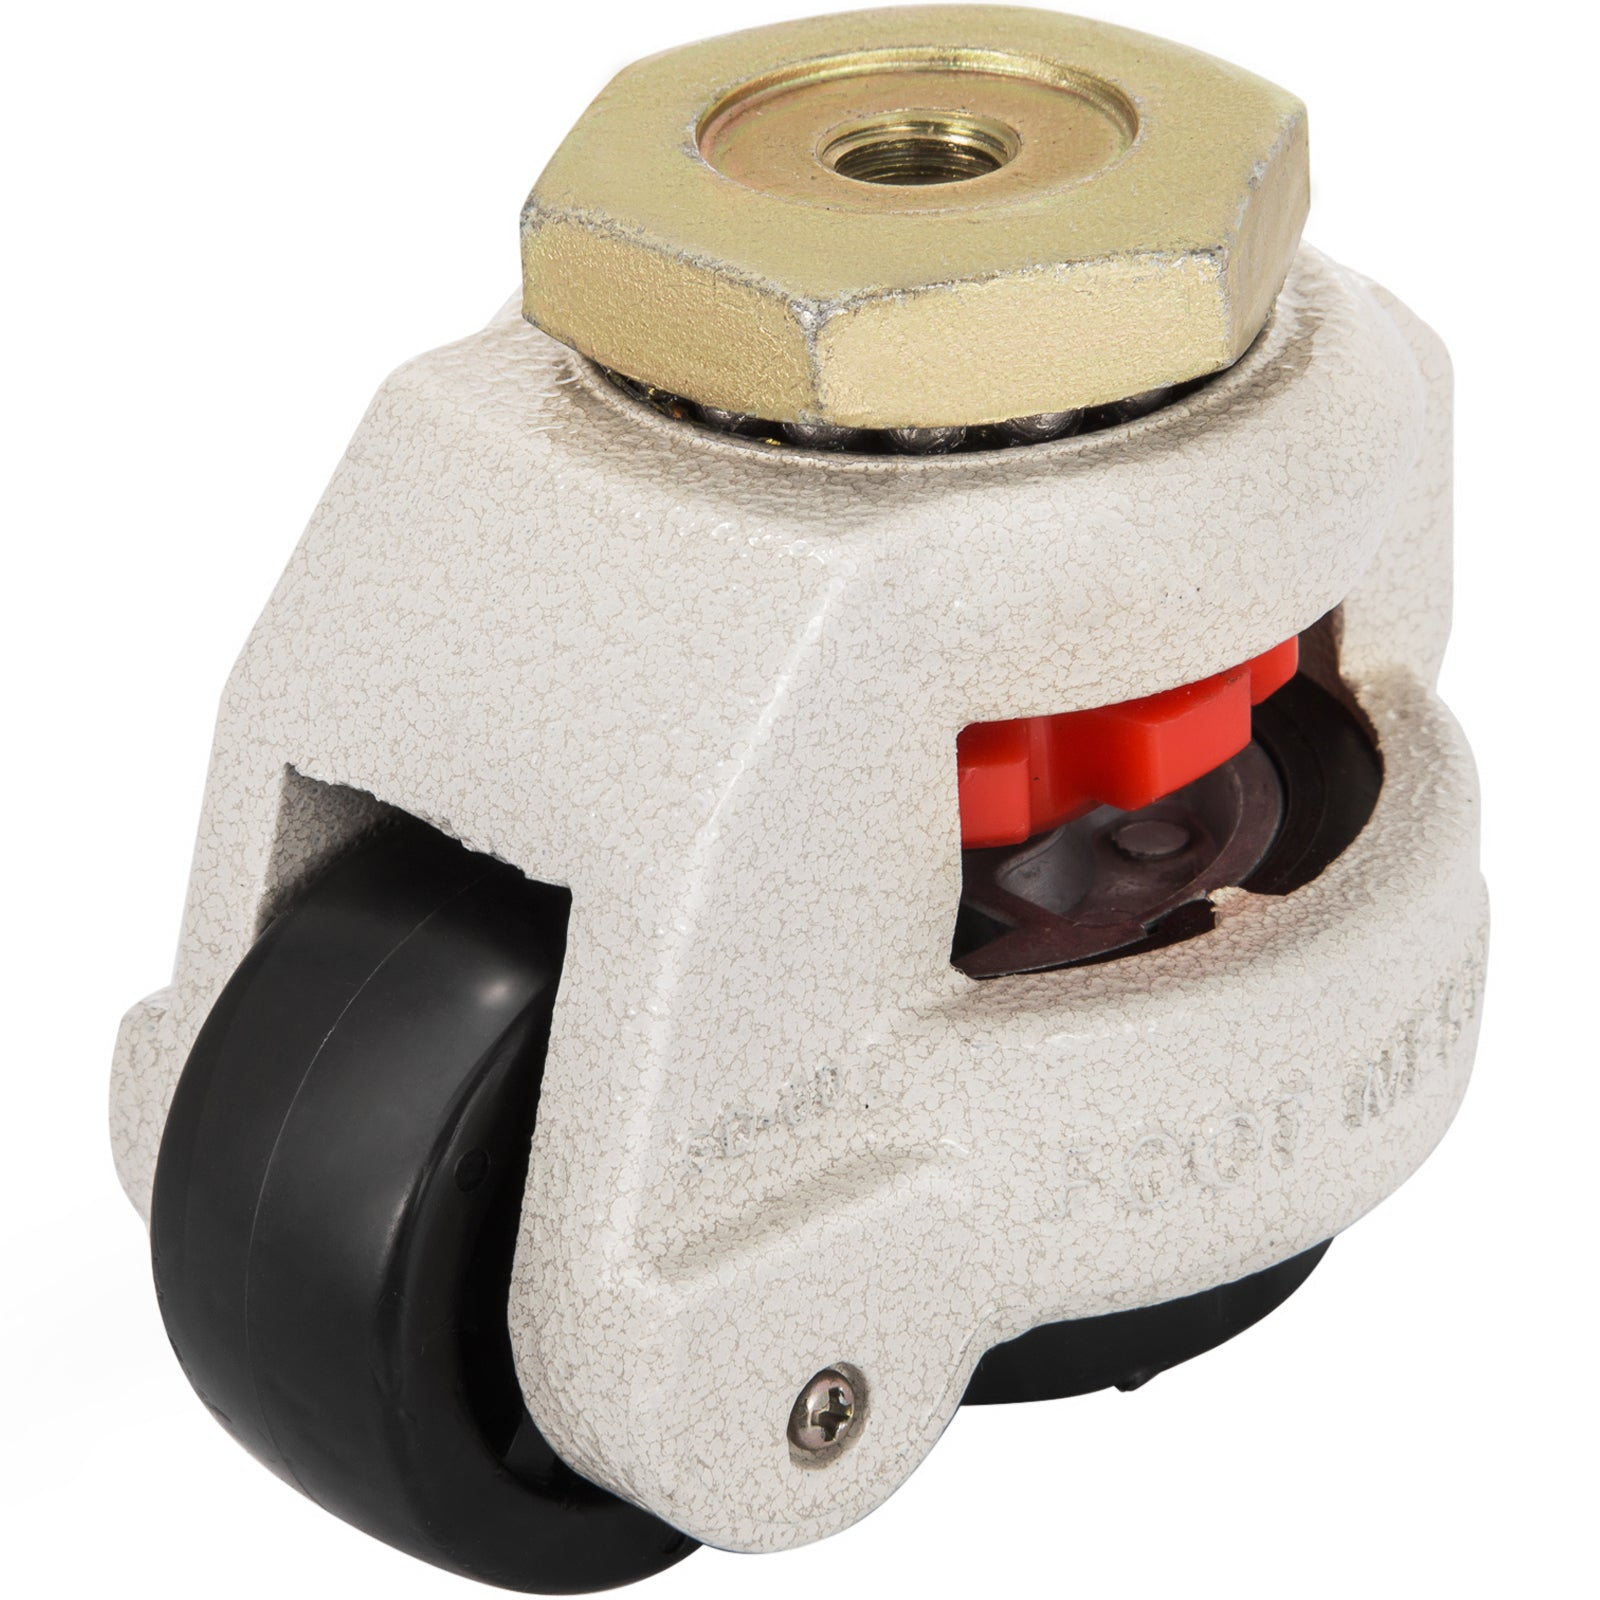 Gd-60s Set Of 4 Leveling Casters High Wearability Medical Footmaster Caster